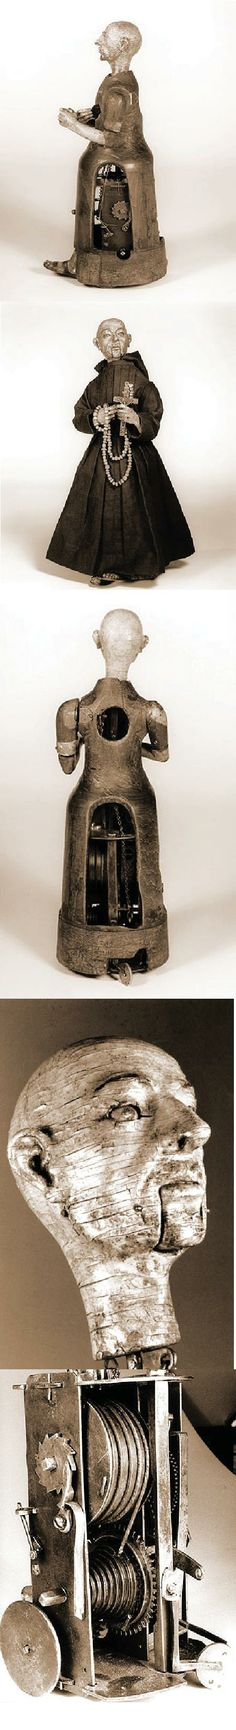 """An automaton of a monk, 15 inches in height. Driven by a key-wound spring, the monk walks in a square, striking his chest with his right arm, raising and lowering a small wooden cross and rosary in his left hand, turning and nodding his head, rolling his eyes, and mouthing silent obsequies. From time to time, he brings the cross to his lips and kisses it. After over 400 years, he remains in good working order."